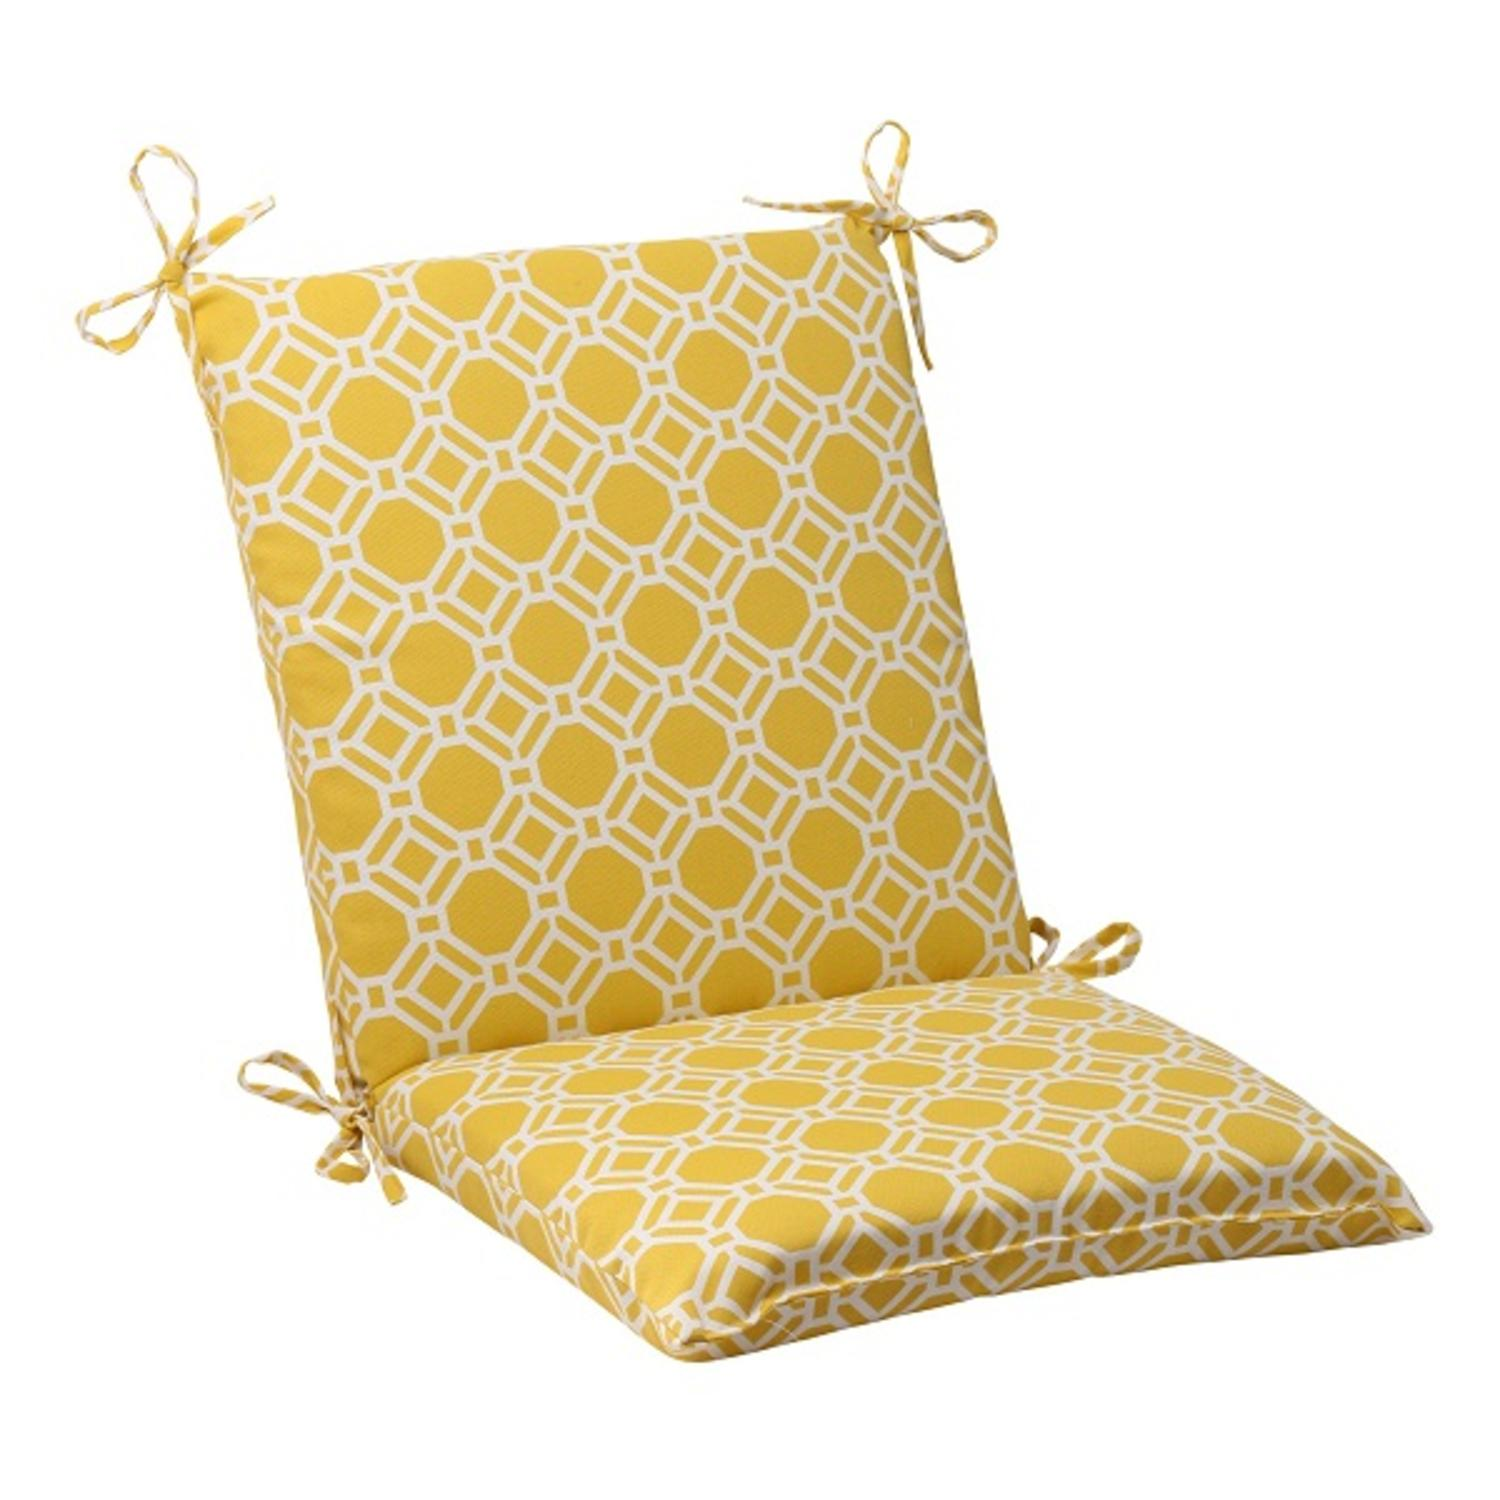 wicker chair cushions with ties covers lidl 36 5 quot sunny yellow and white square outdoor patio